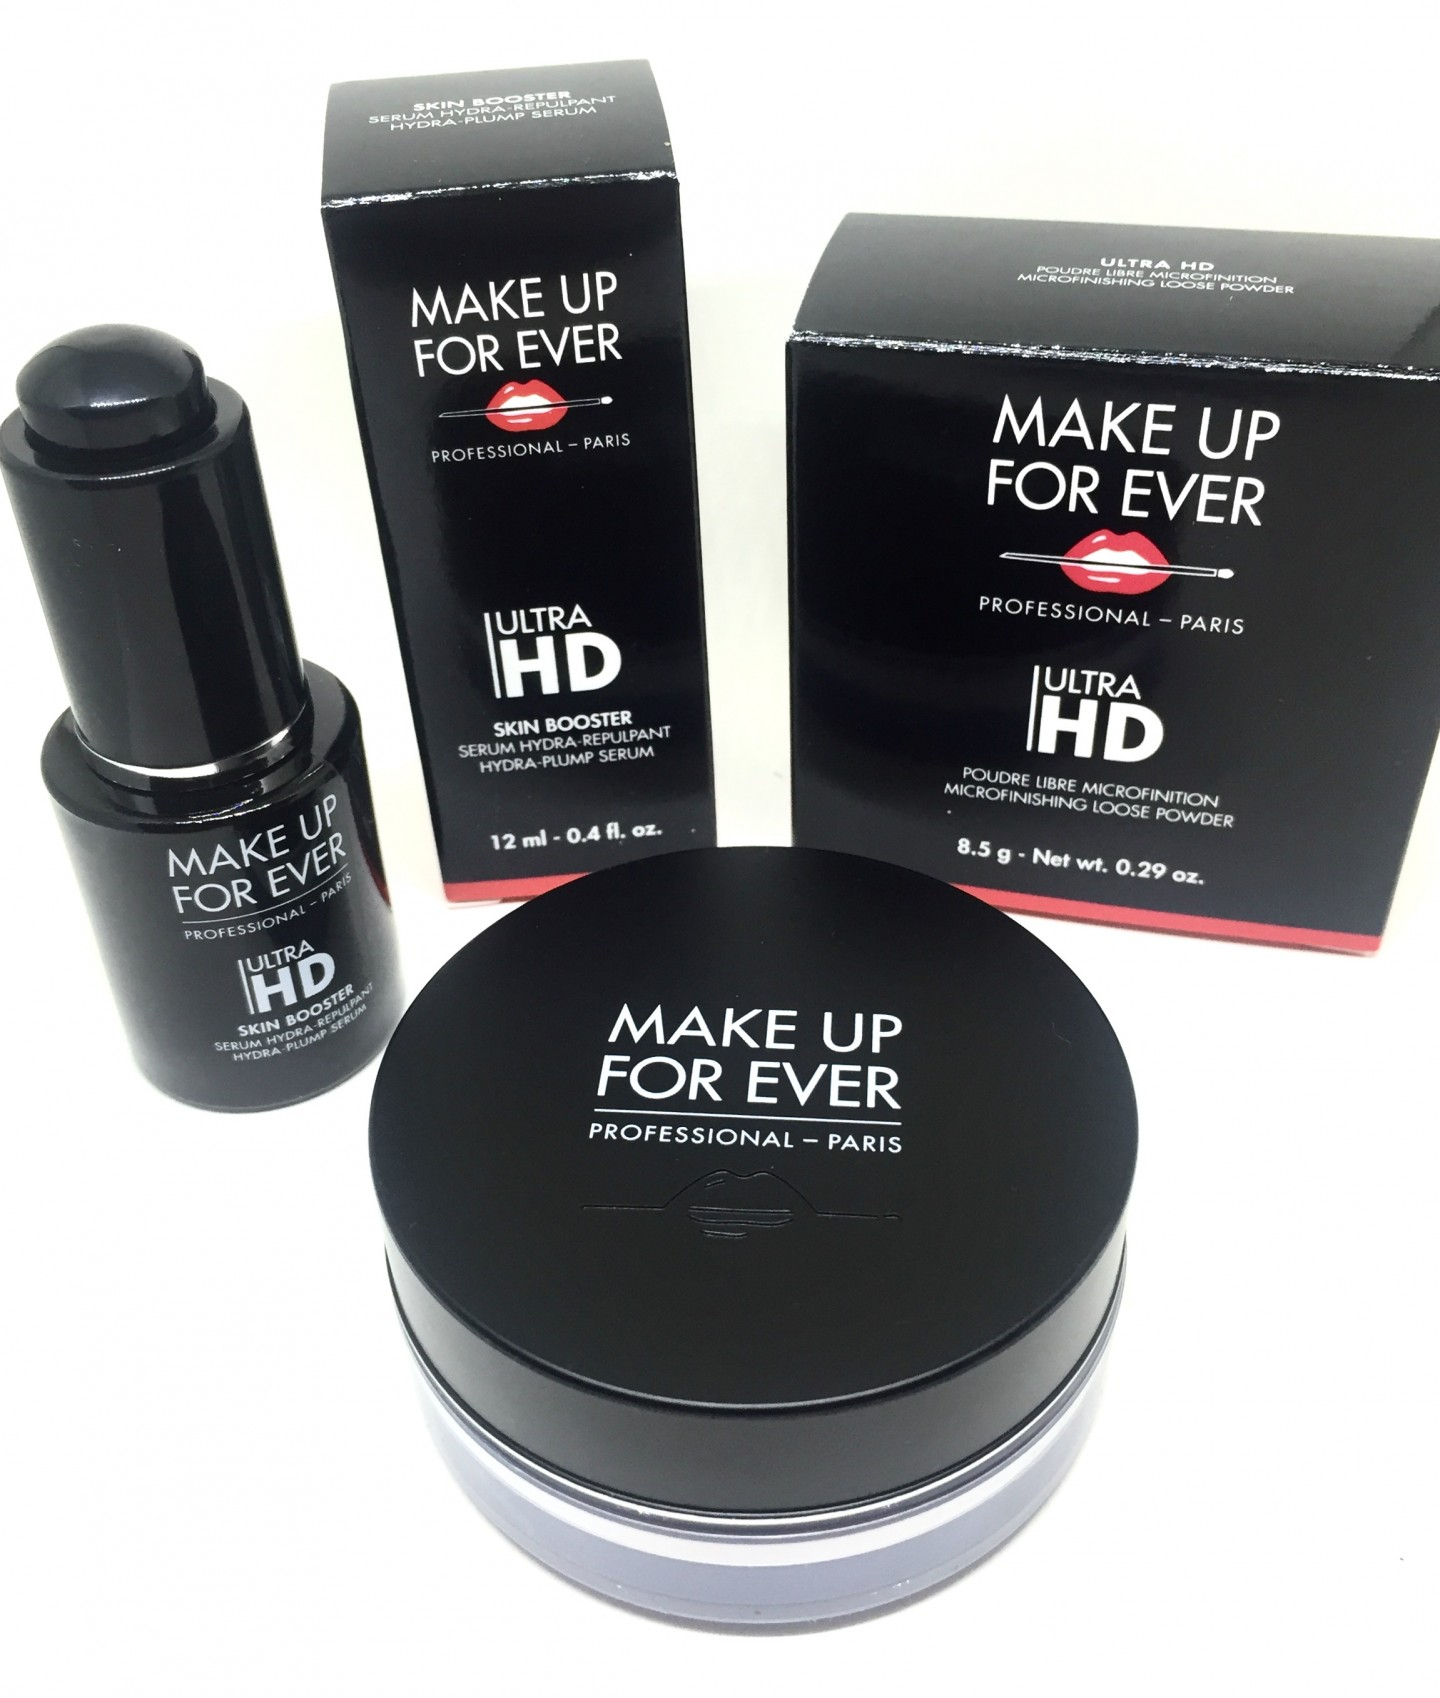 Make Up For Ever's Ultra HD Skin Booster Serum and Microfinishing Loose Powder